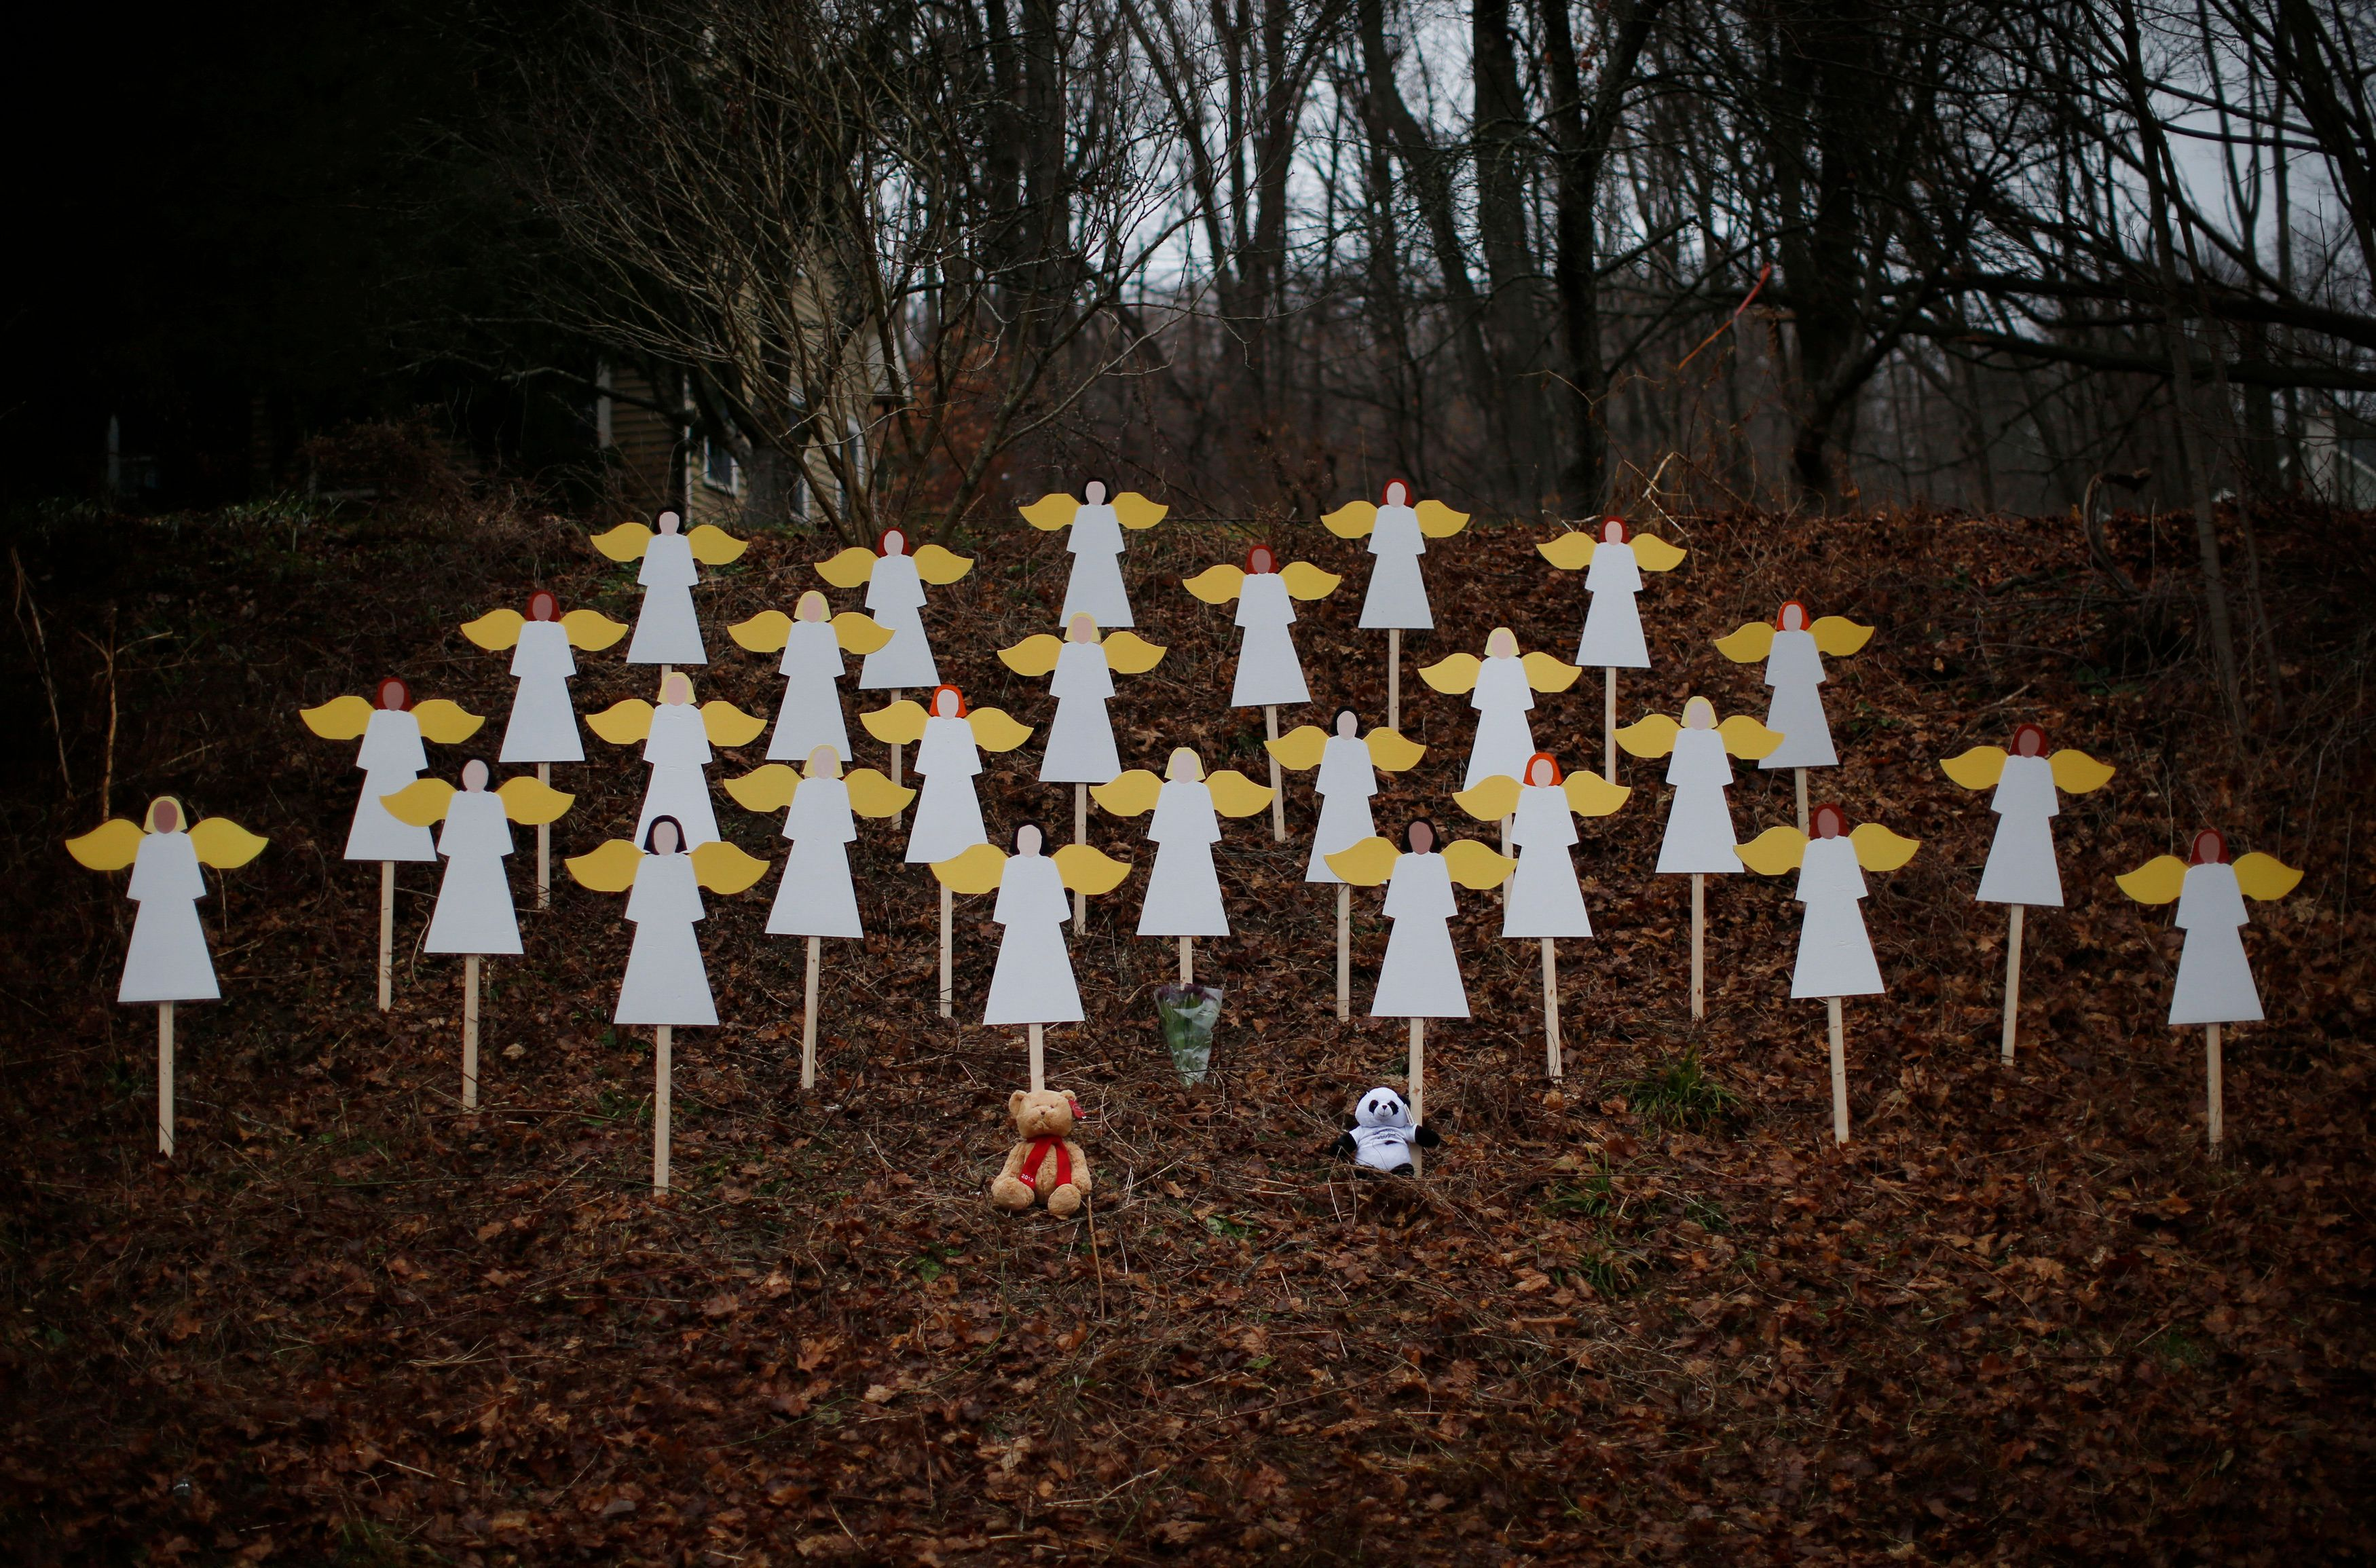 5 years since tragic Sandy Hook shooting